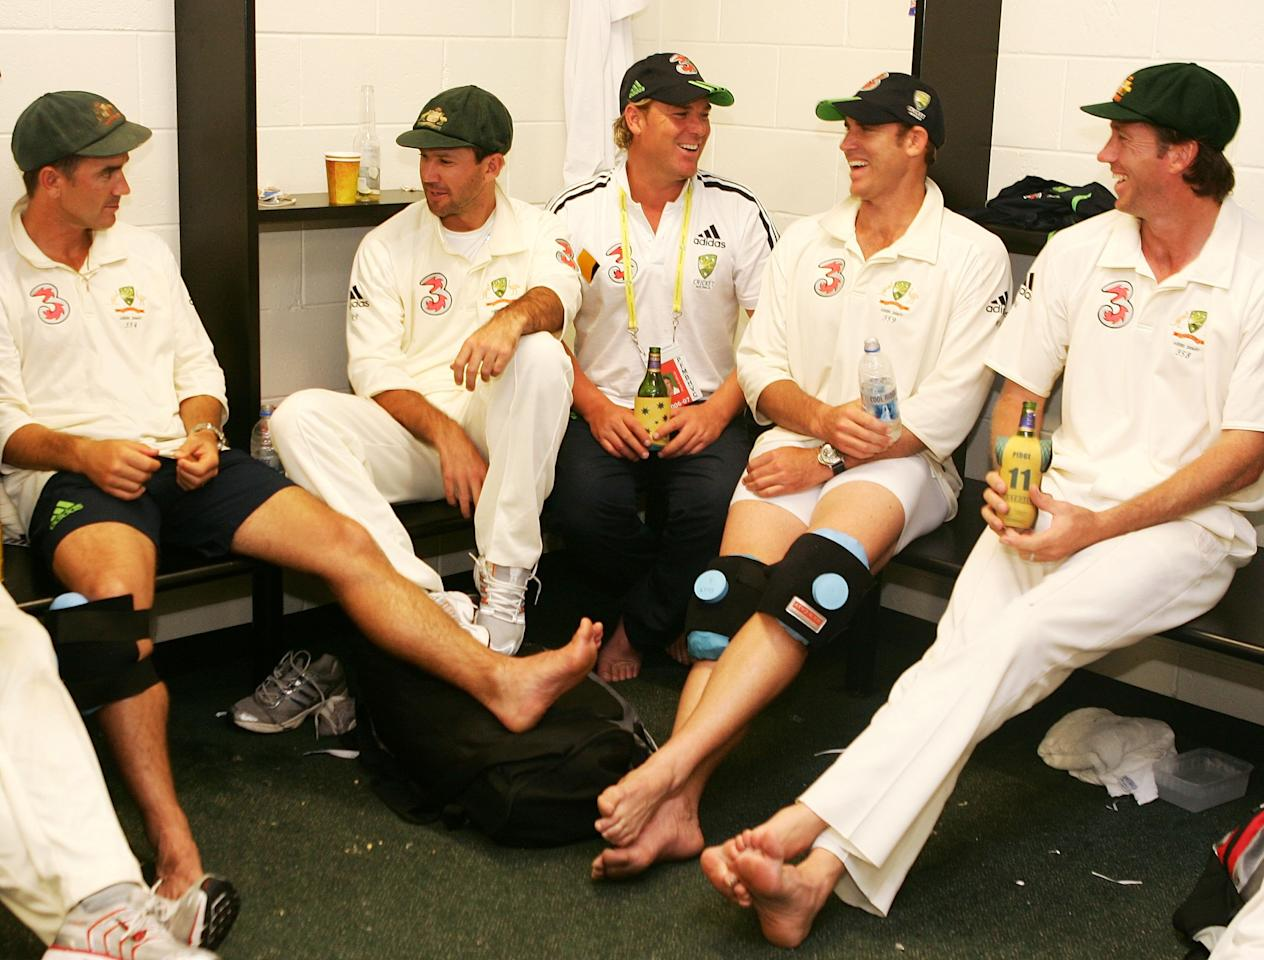 BRISBANE, AUSTRALIA - NOVEMBER 27:  (L-R) Justin Langer, Ricky Ponting, Shane Warne, Matthew Hayden and Glenn McGrath of Australia celebrate in the changing rooms after Australia's victory on day five of the first Ashes Test Match between Australia and England at The Gabba on November 27, 2006 in Brisbane, Australia.  (Photo by Hamish Blair/Getty Images)